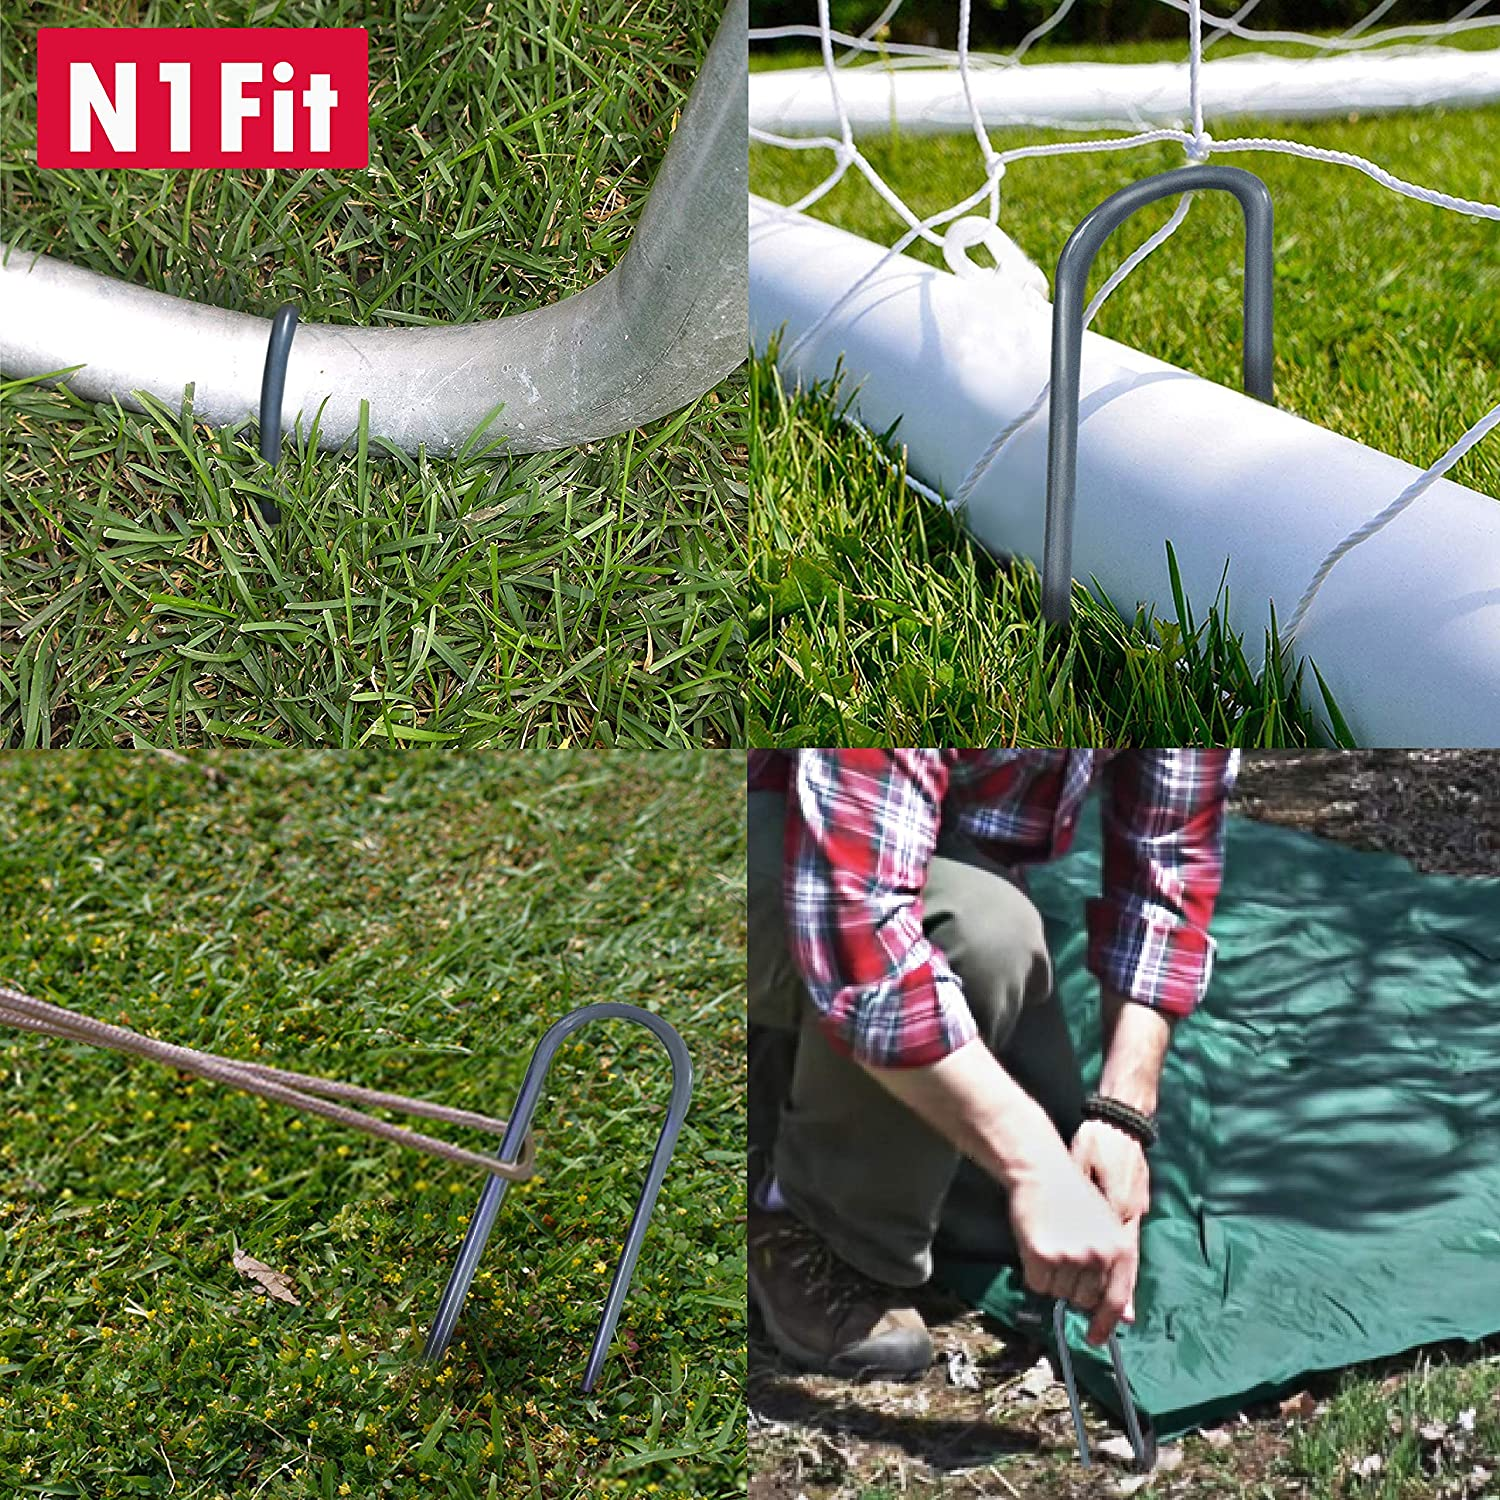 N1Fit Heavy Duty Galvanized Steel Trampoline Wind Stakes